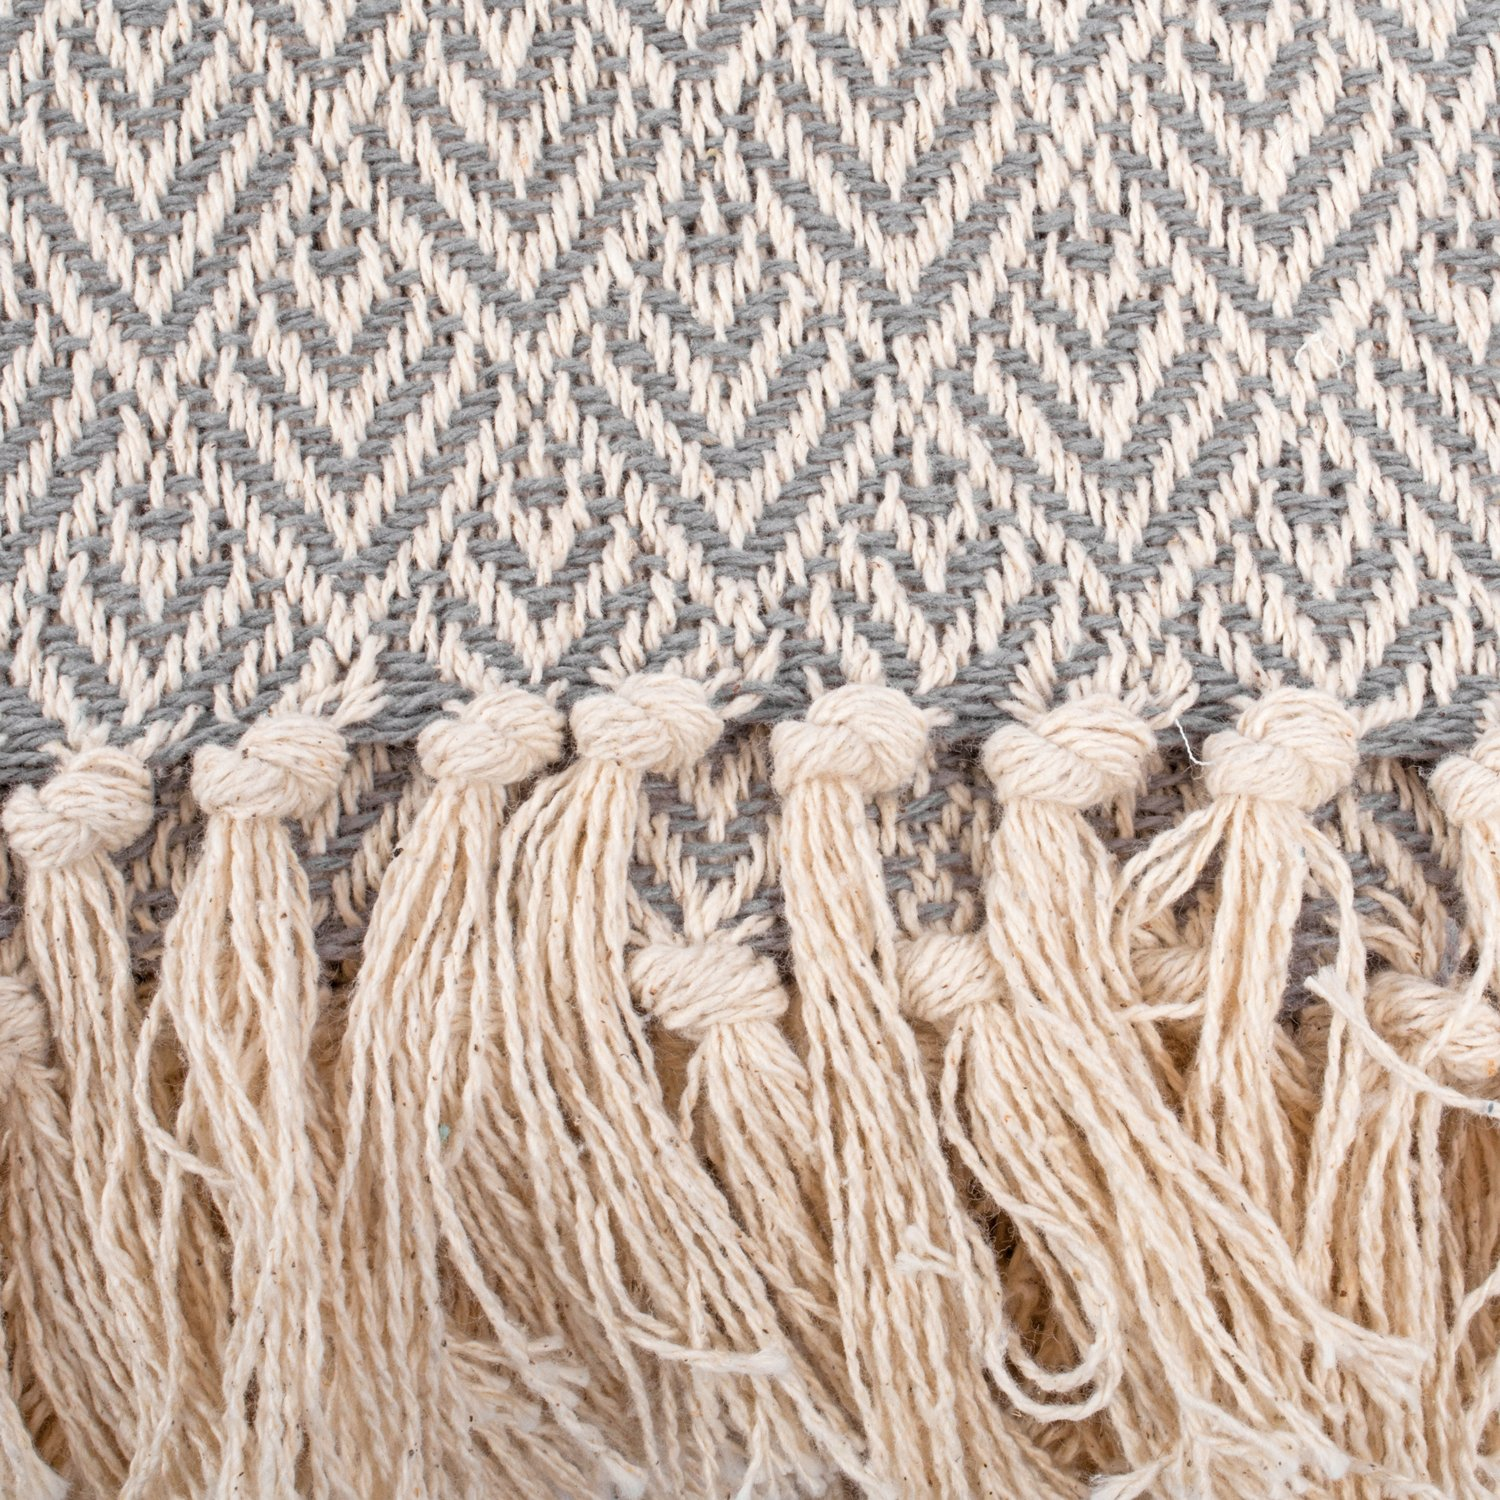 DII Rustic Farmhouse Cotton Diamond Blanket Throw with Fringe for Chair, Couch, Picnic, Camping, Beach, Everyday Use, 50 x 60 - Diamond Gray by DII (Image #3)